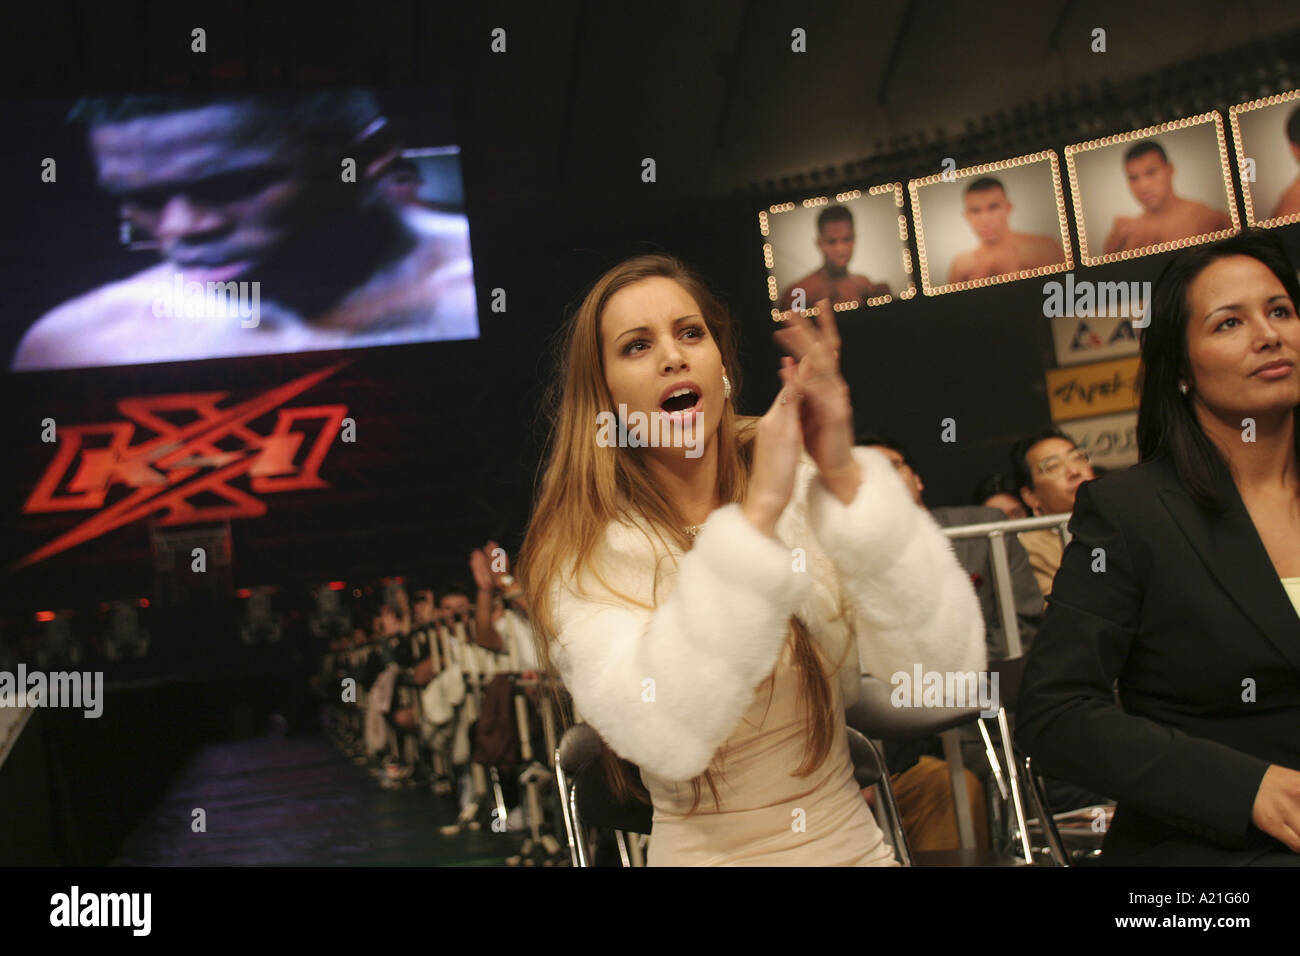 Supporter of fighter at K1 fight , Tokyo, Japan, Asia. - Stock Image